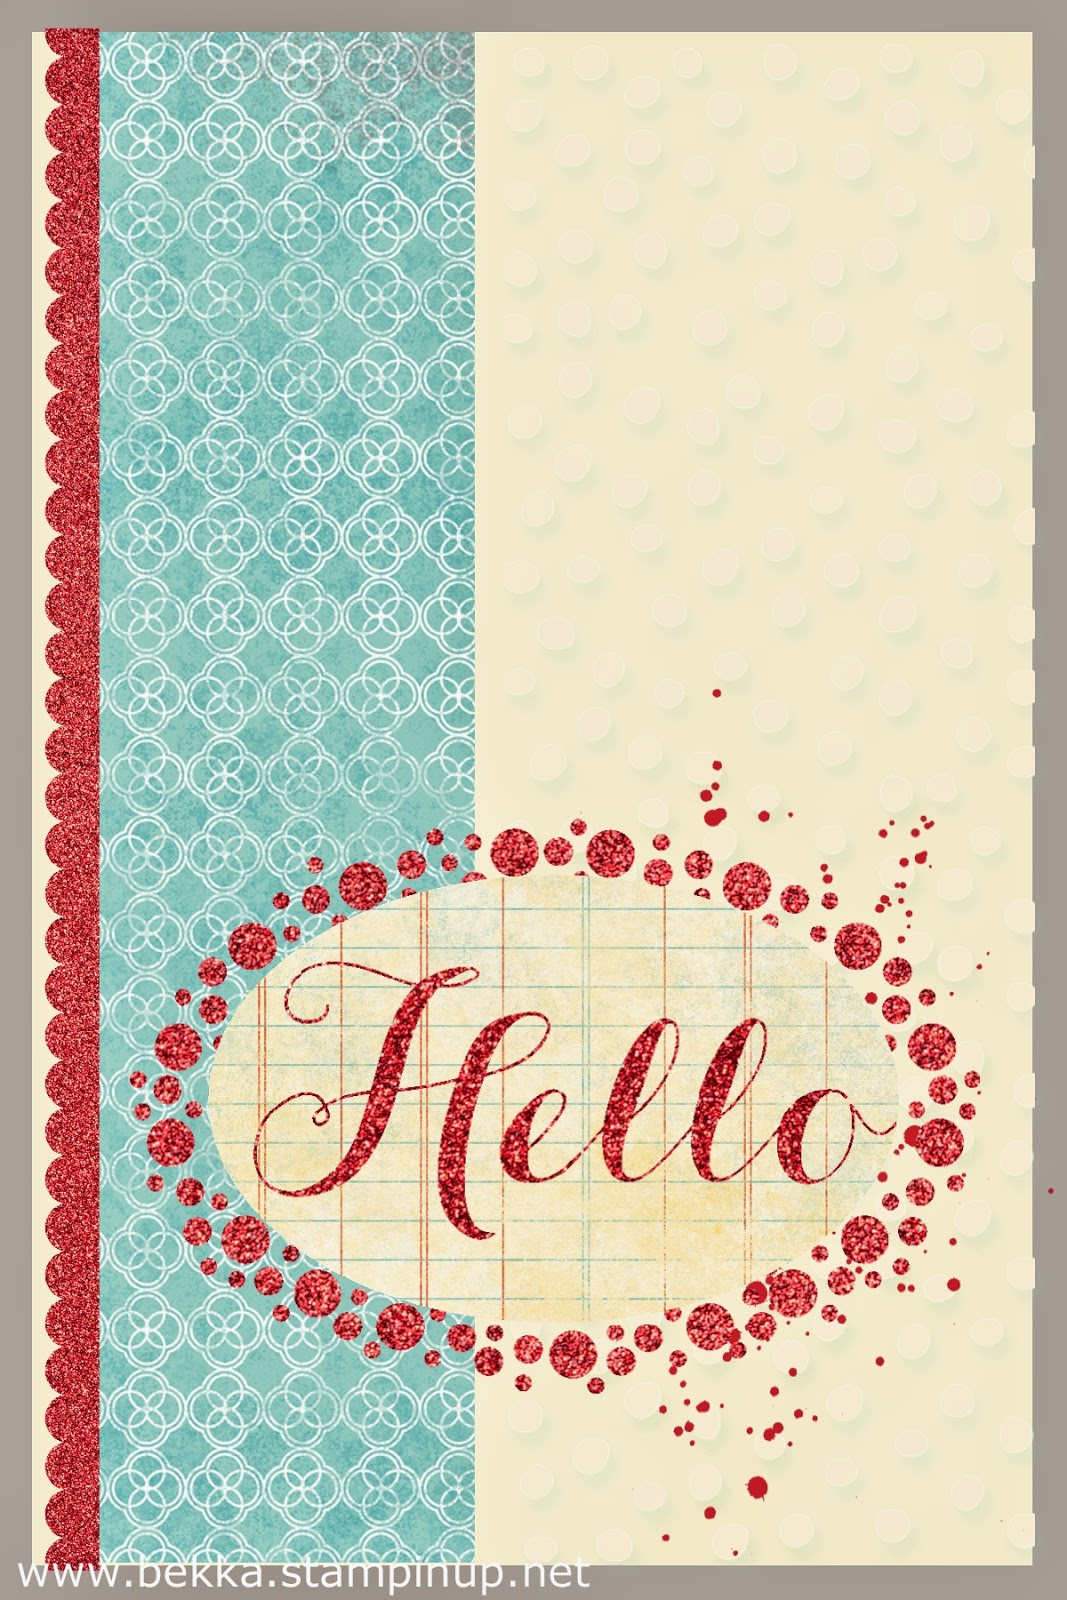 Cute Digital Hello Card by Stampin' Up! UK Independent Demonstrator Bekka Prideaux